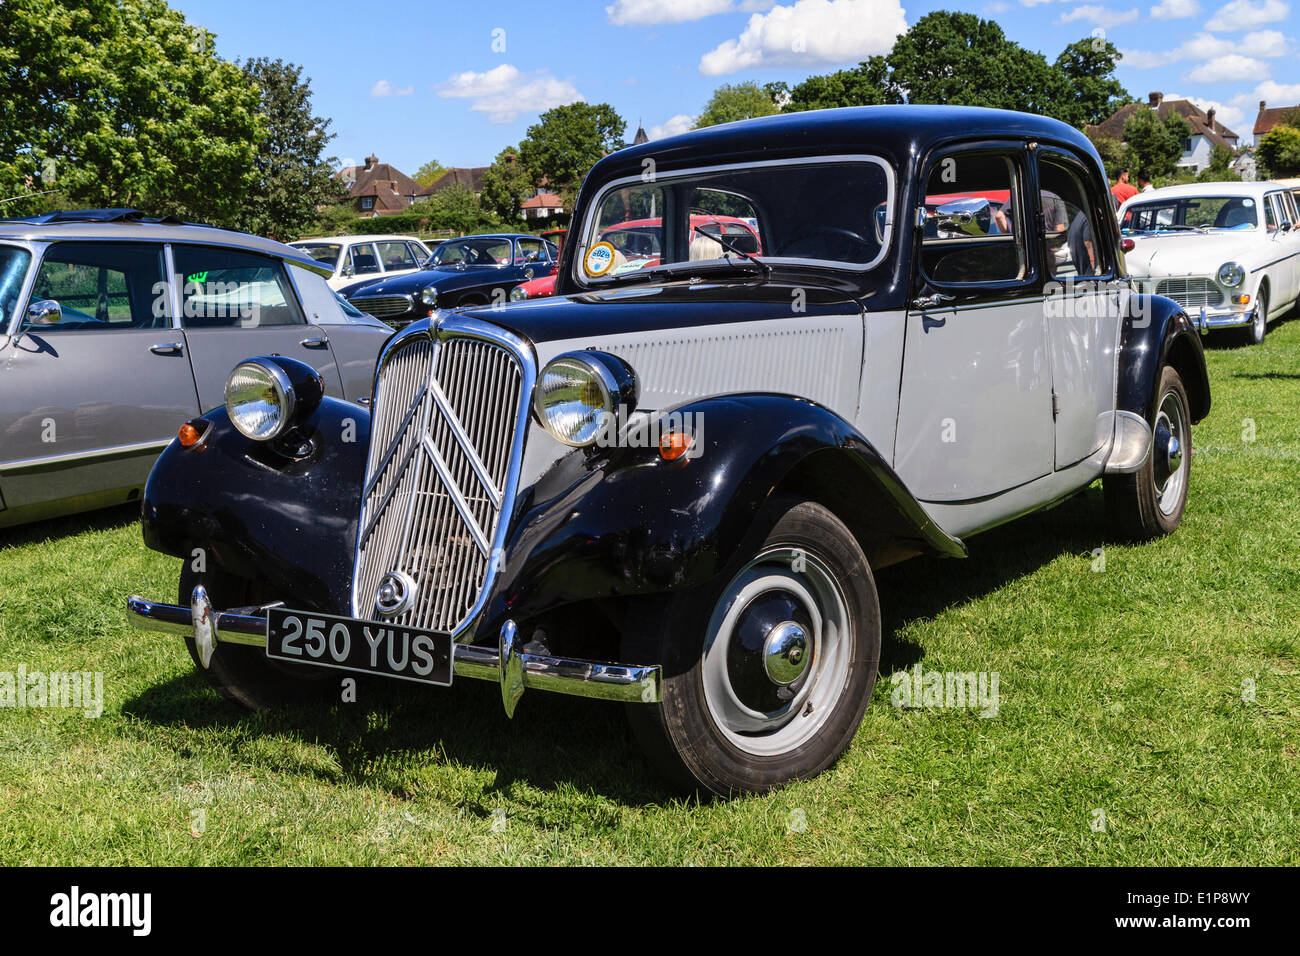 1953 Citroen Traction Avant on display at Bromley Pageant of Motoring annual classic car show. - Stock Image